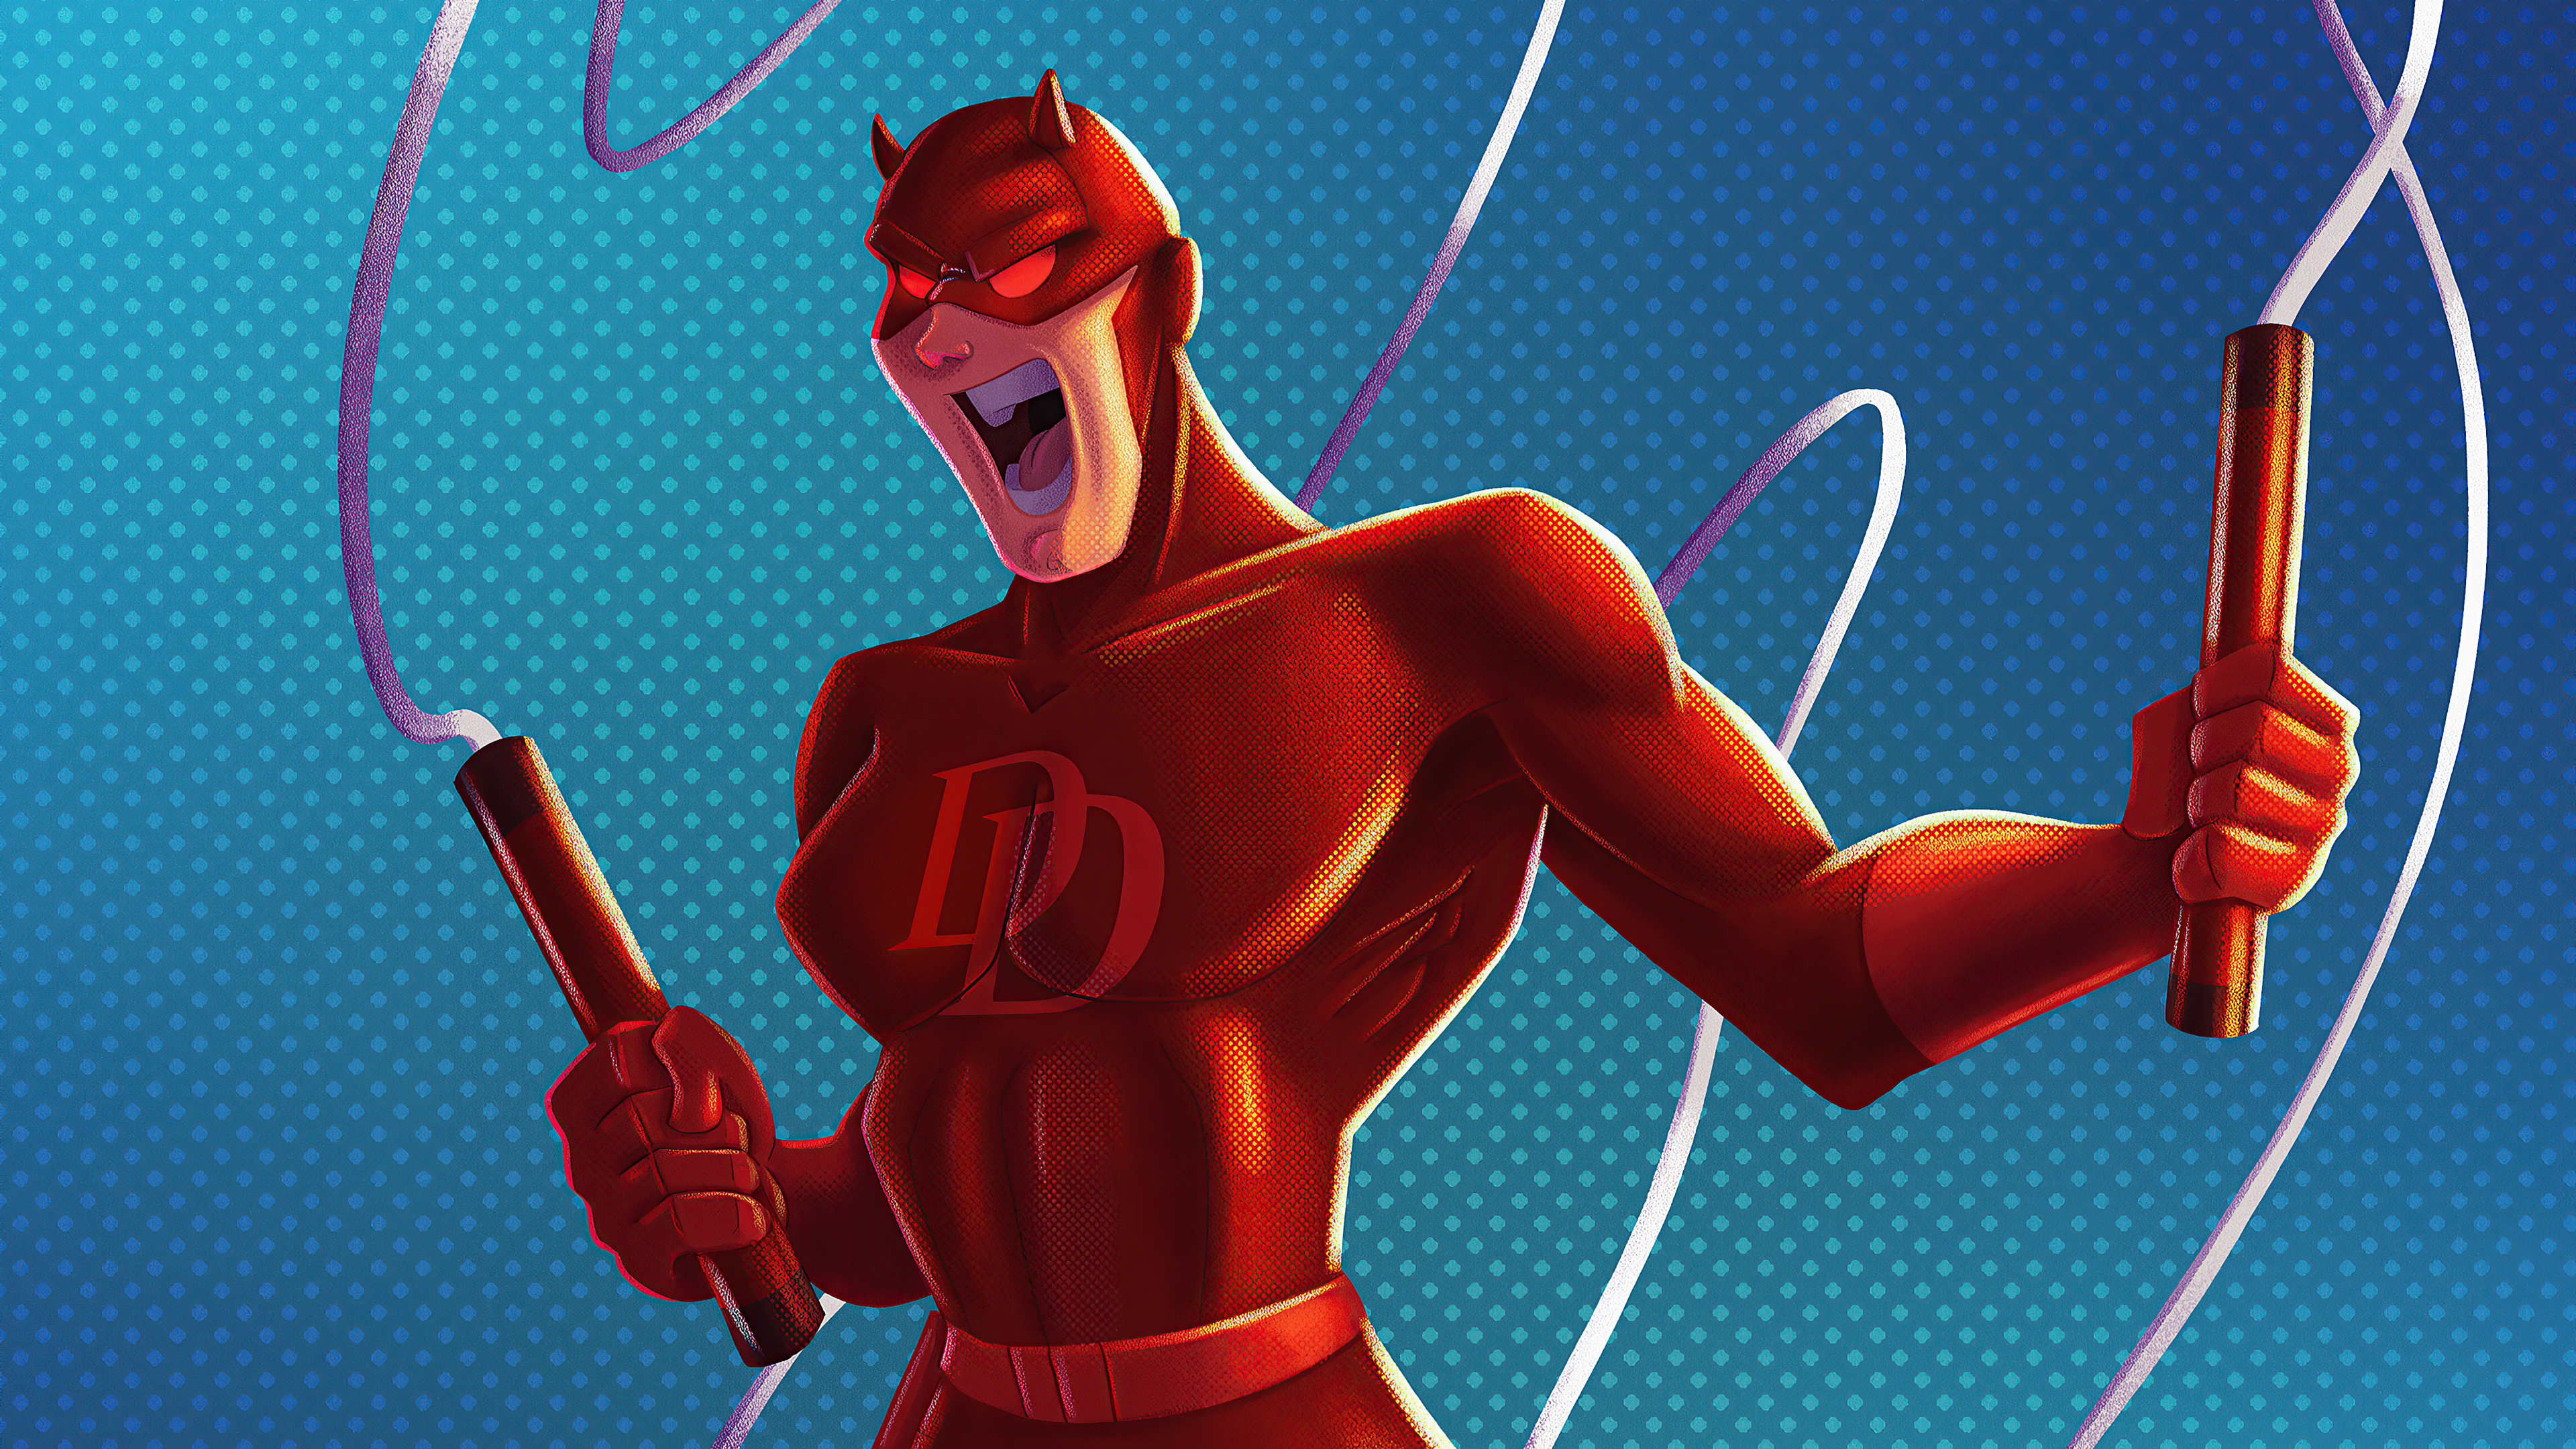 Daredevil Marvel Comic Art Wallpaper Hd Superheroes 4k Wallpapers Images Photos And Background